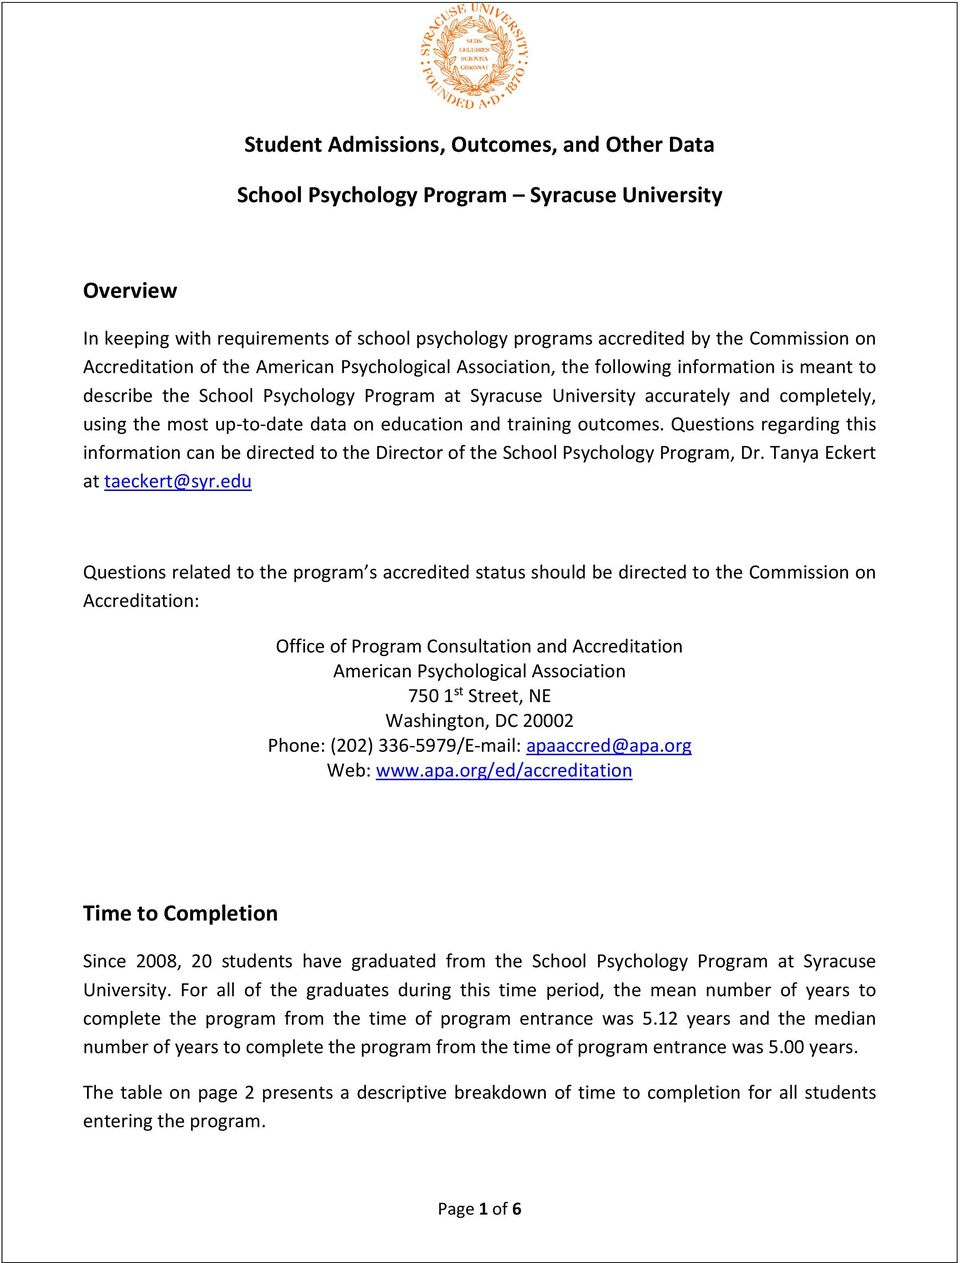 up-to-date data on education and training outcomes. Questions regarding this information can be directed to the Director of the School Psychology Program, Dr. Tanya Eckert at taeckert@syr.